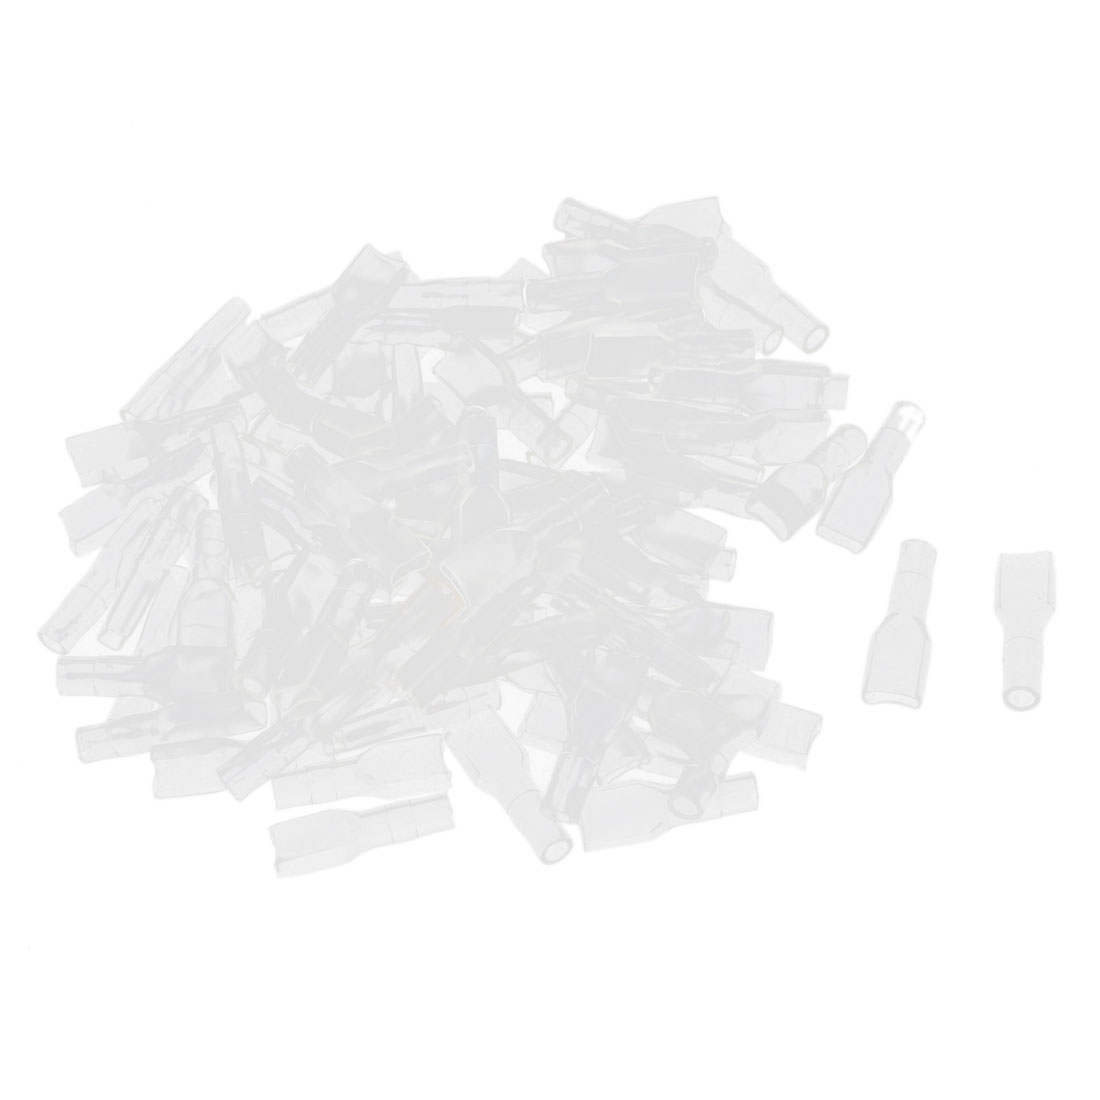 100 Pcs 4.8mm Clear Soft PVC Insulated Ring Terminal Caps Boots Covers Sleeves